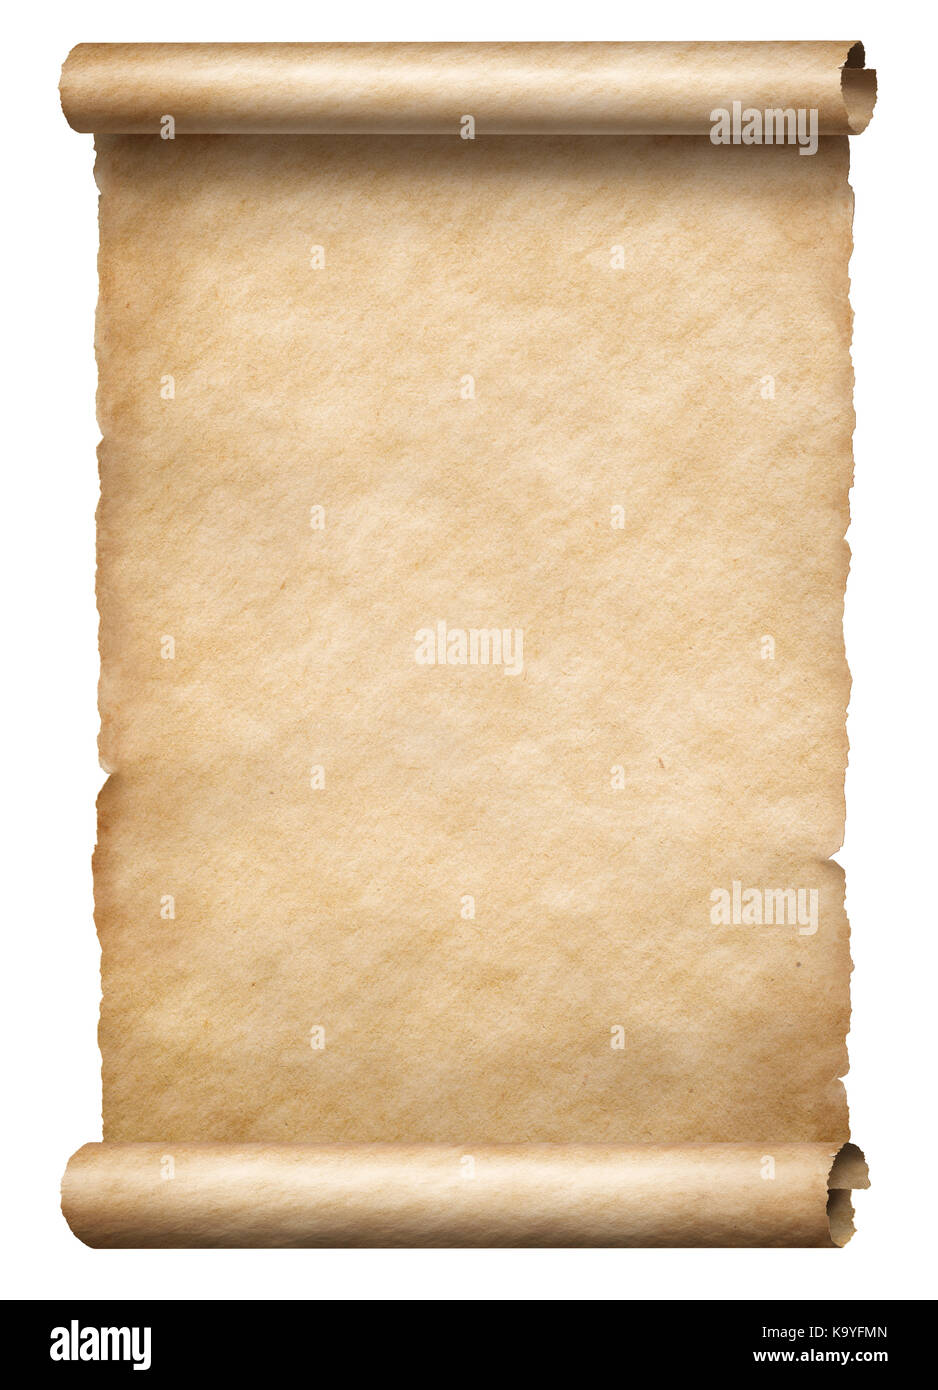 Old paper scroll or parchment isolated vertically oriented 3d illustration - Stock Image